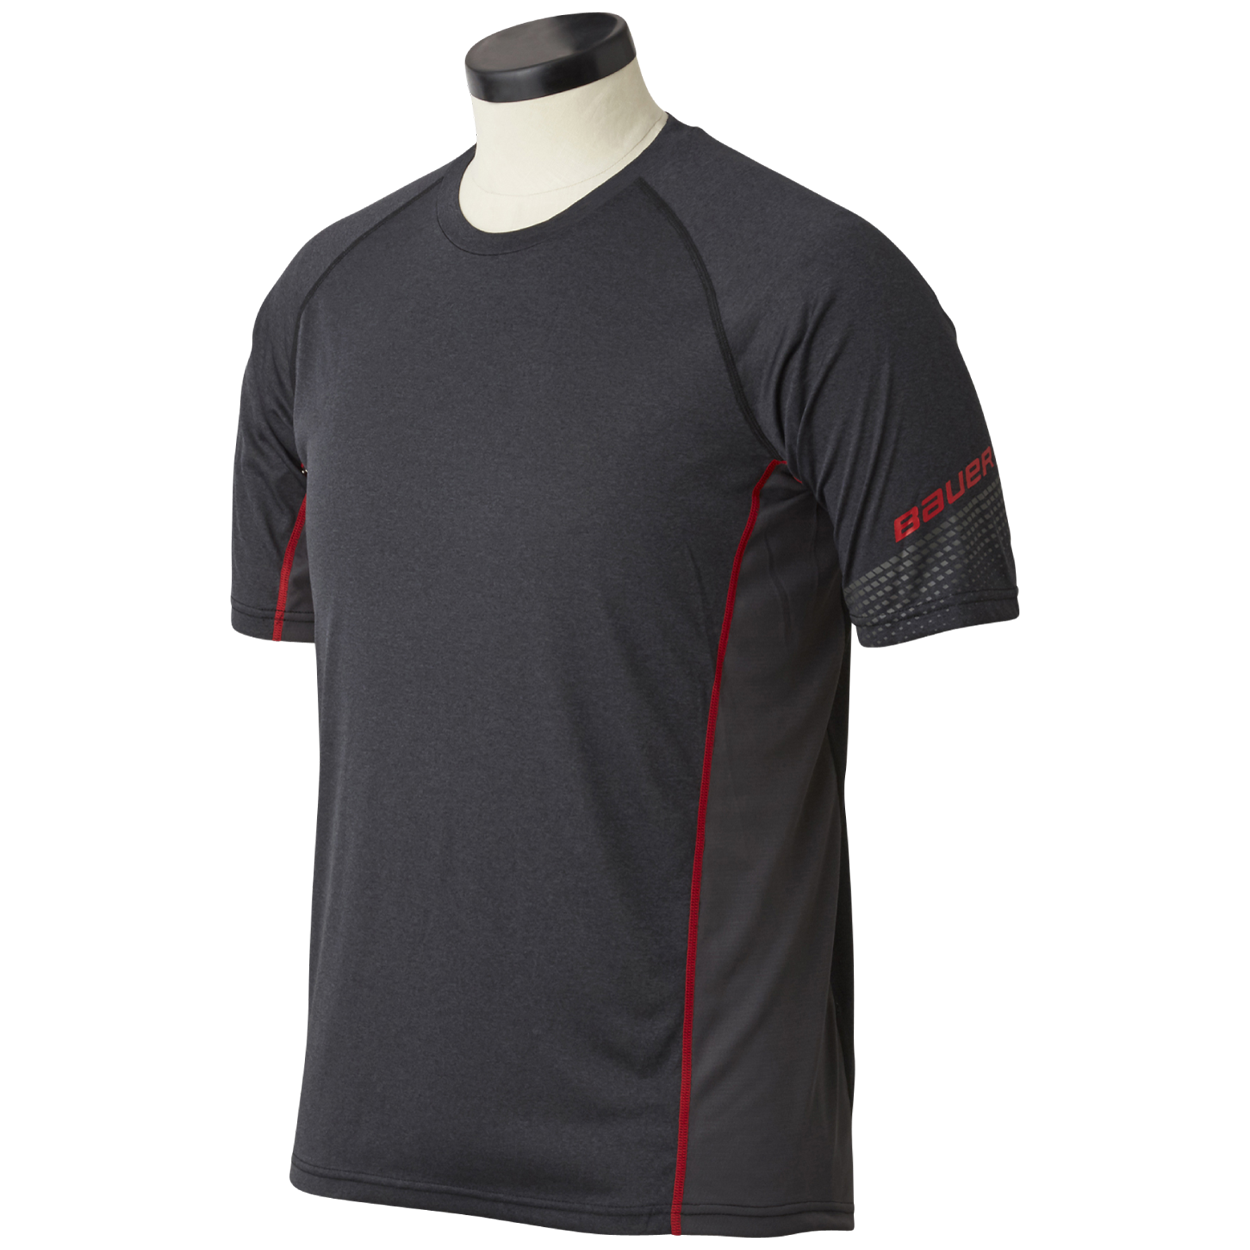 Essential Short Sleeve Base Layer Top Youth,,medium